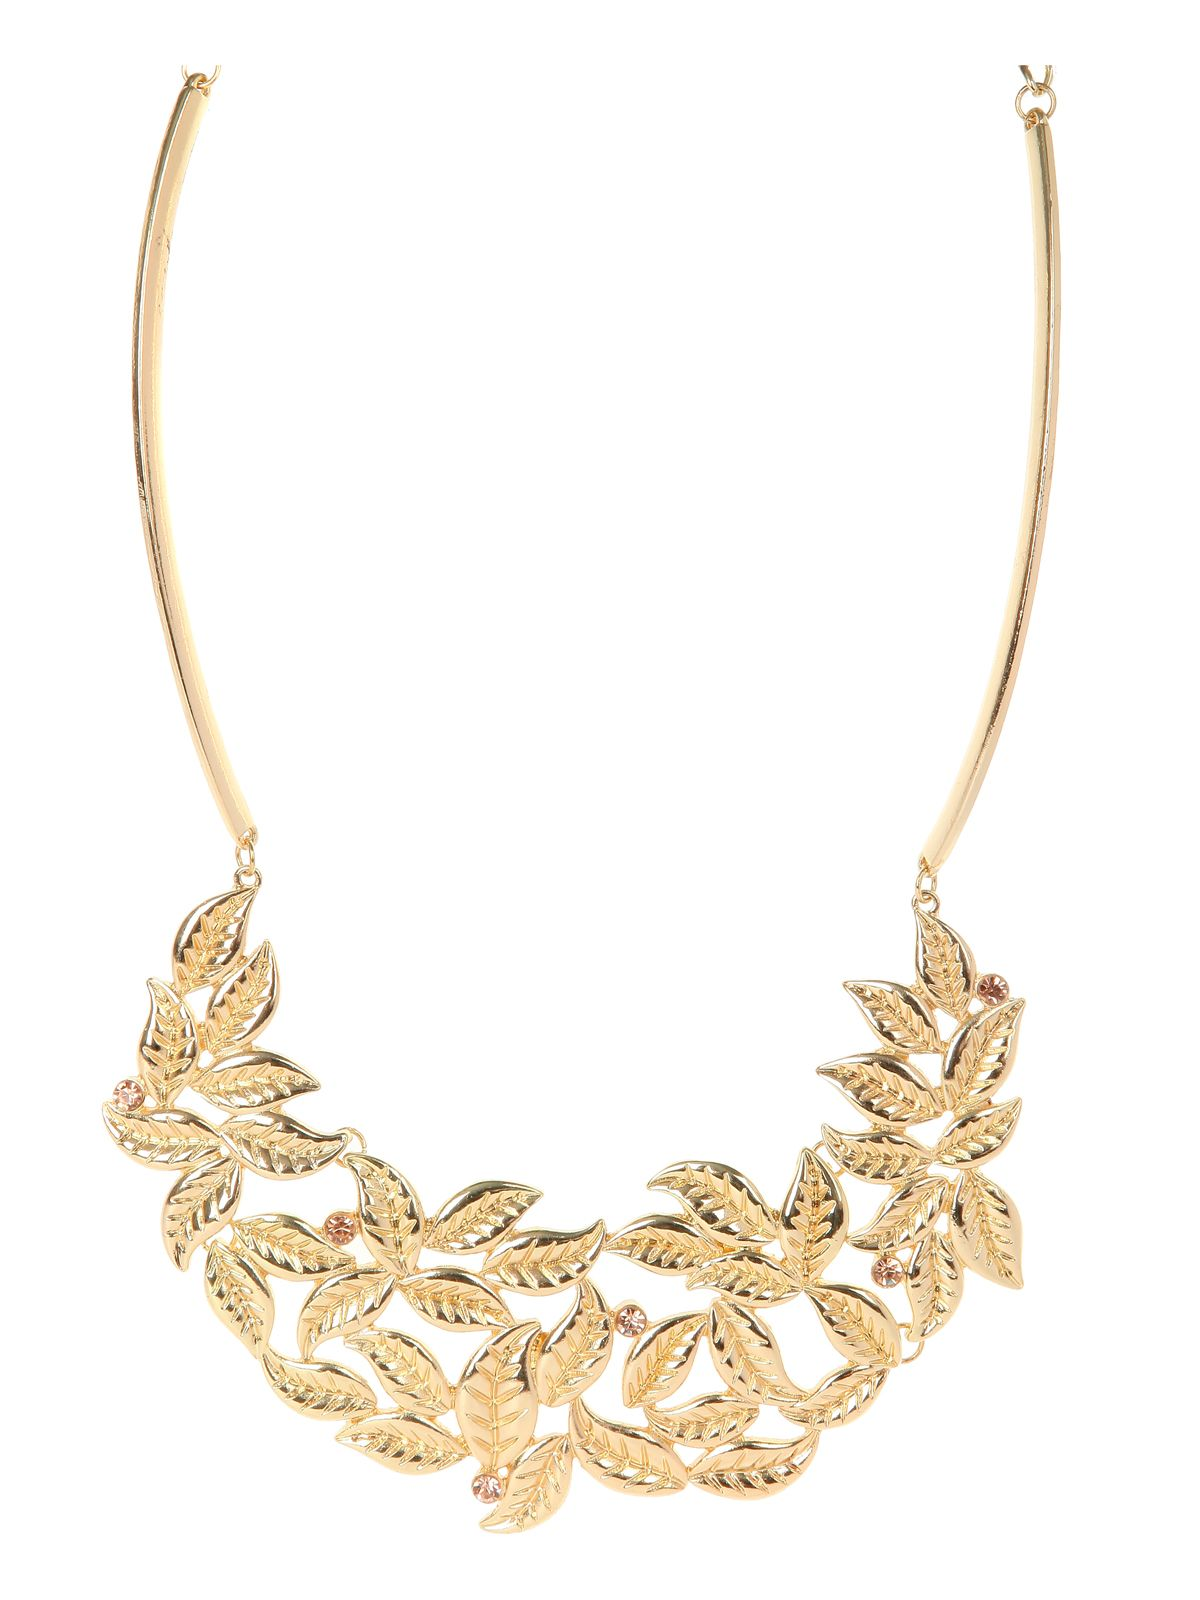 Statement Leaf Necklace